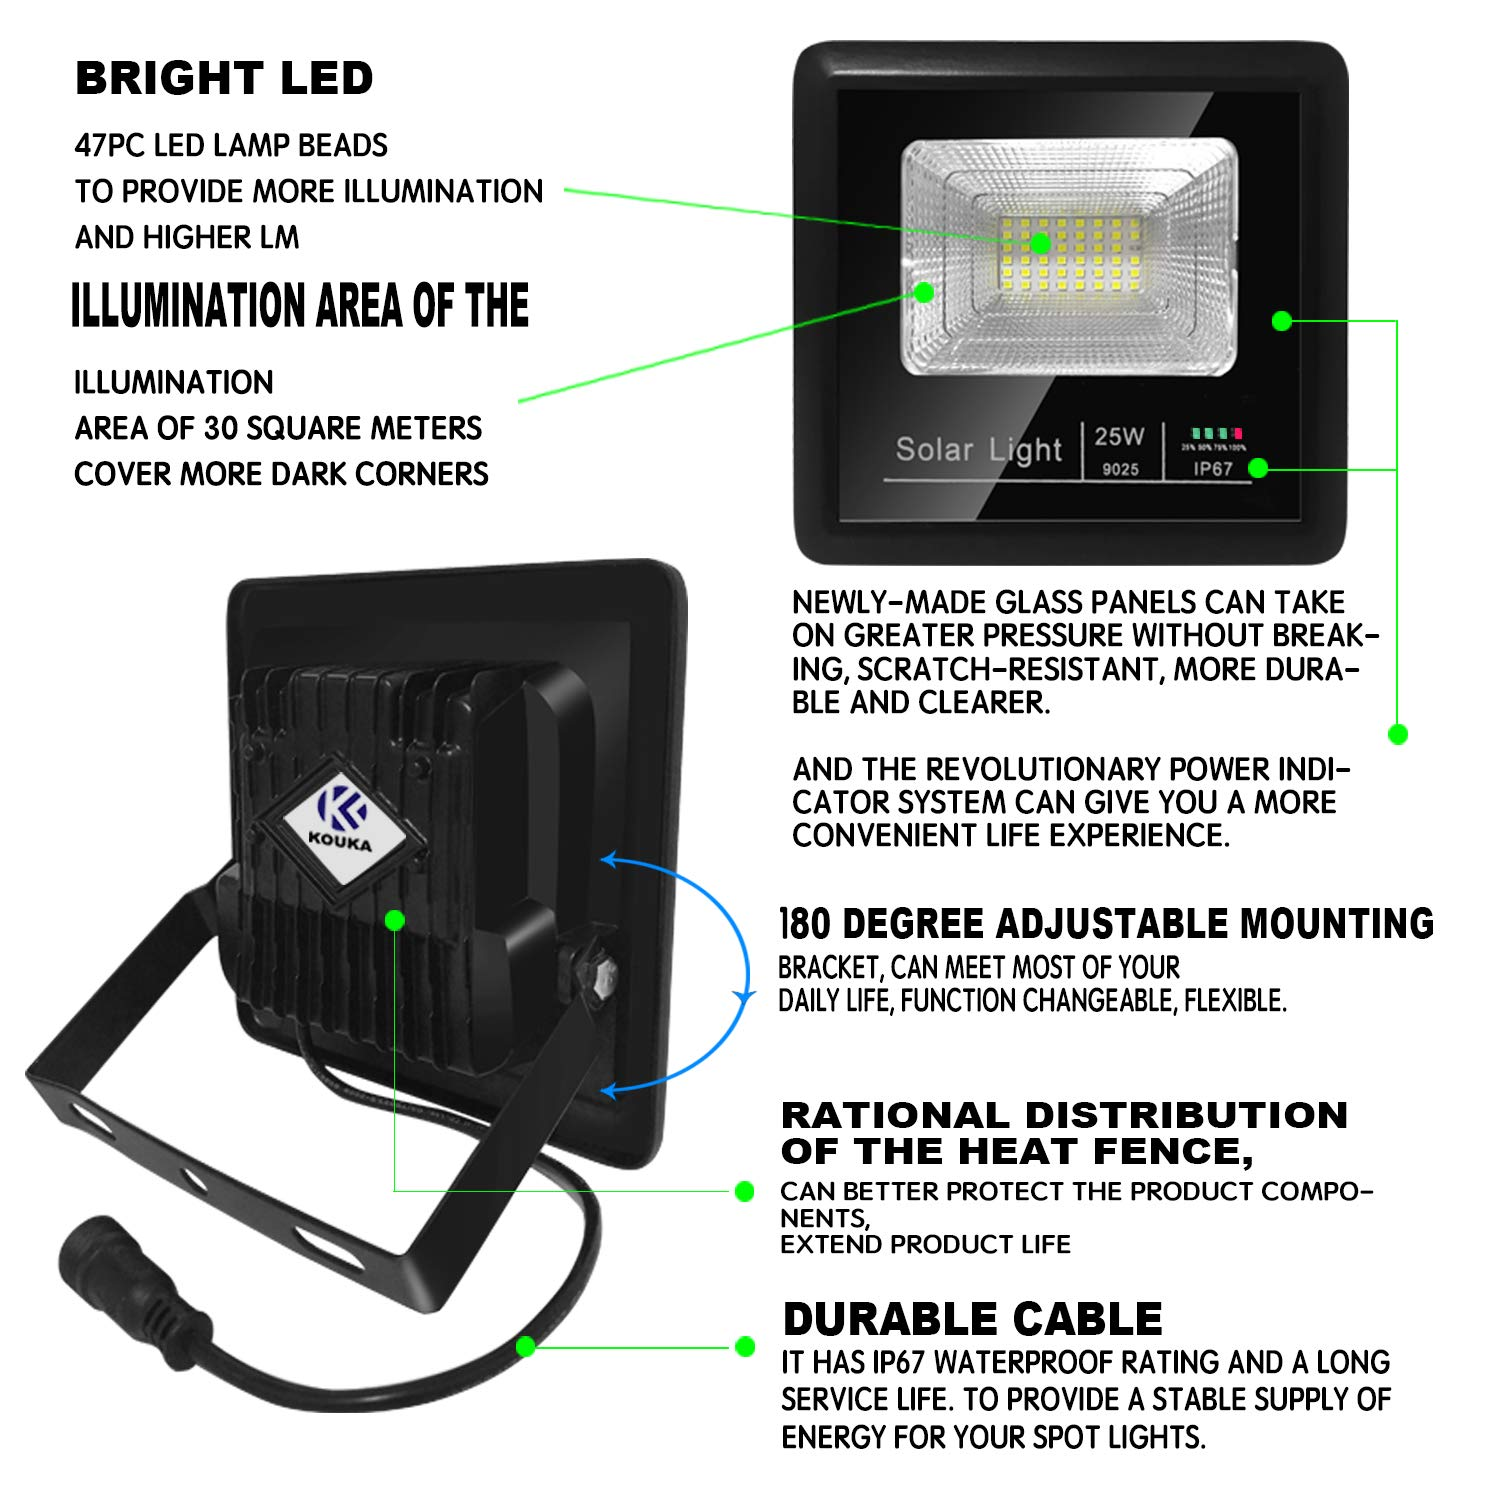 Solar Flood Lights Outdoor Remote – LED Solar Powered Street Security Lighting Waterproof Auto On Off Adjustable Install for Garden Yard Pathway